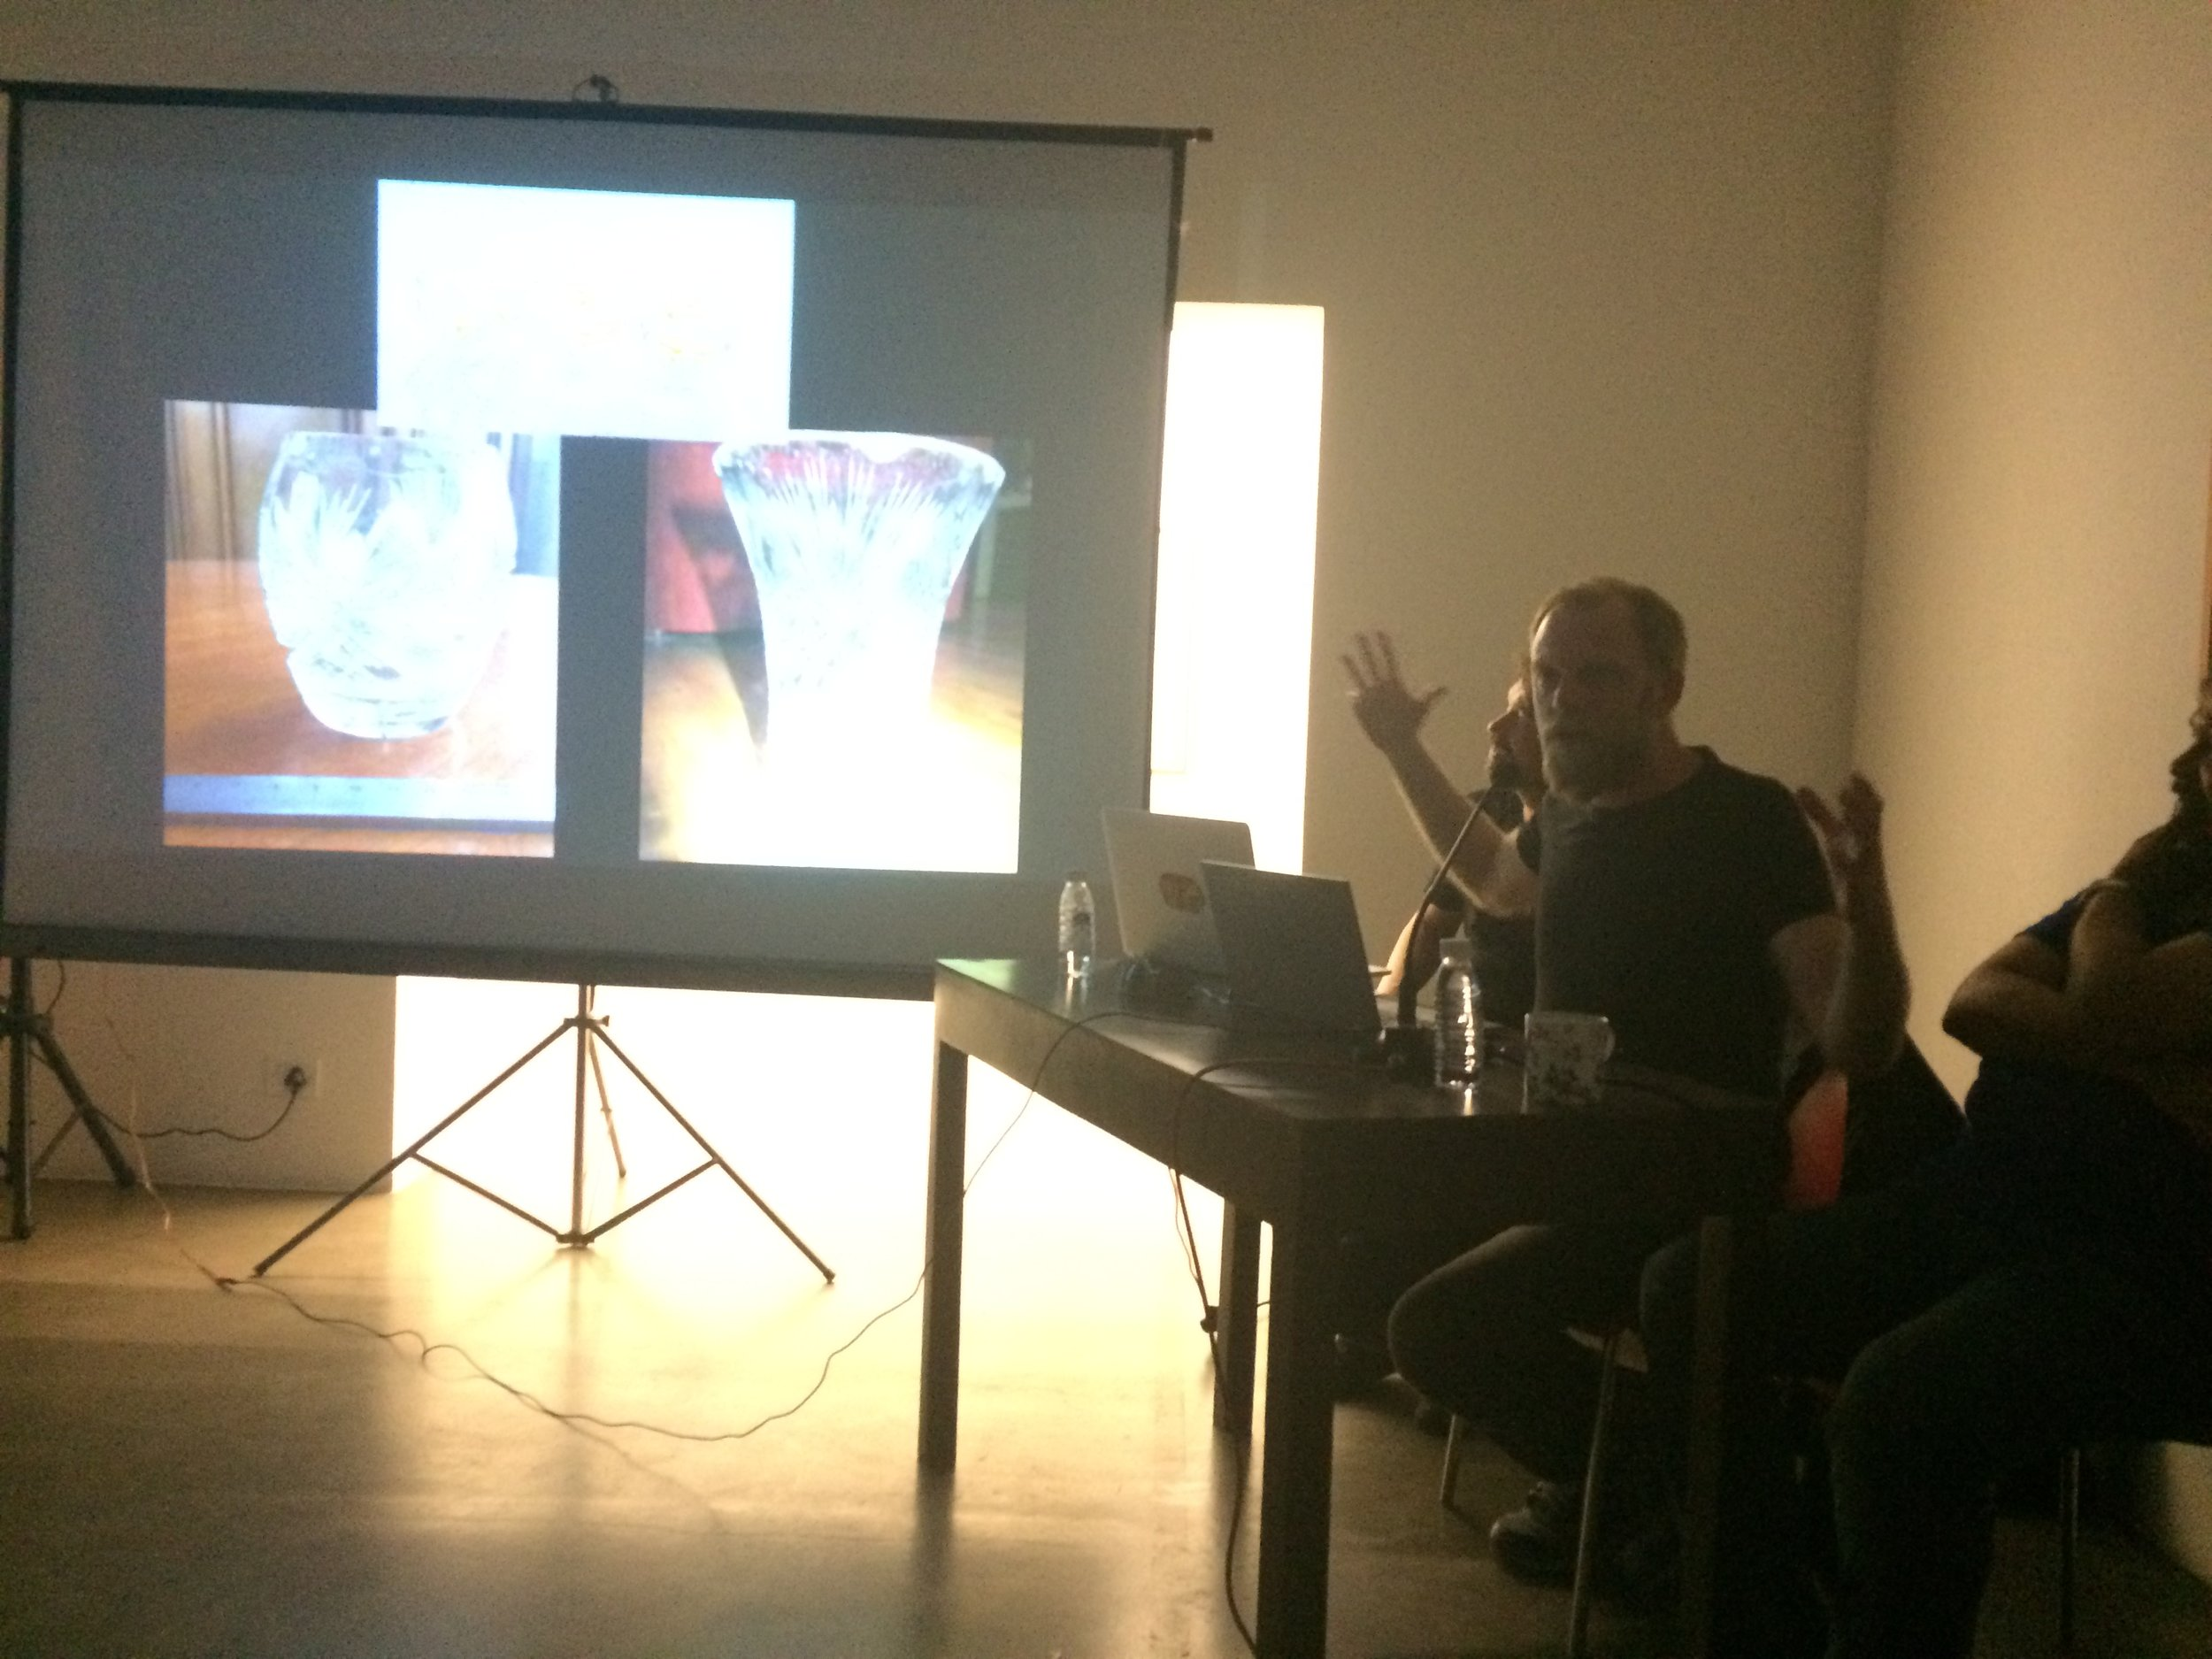 Polish india show: talk by Janek Simon and Max Cegielski | C-13